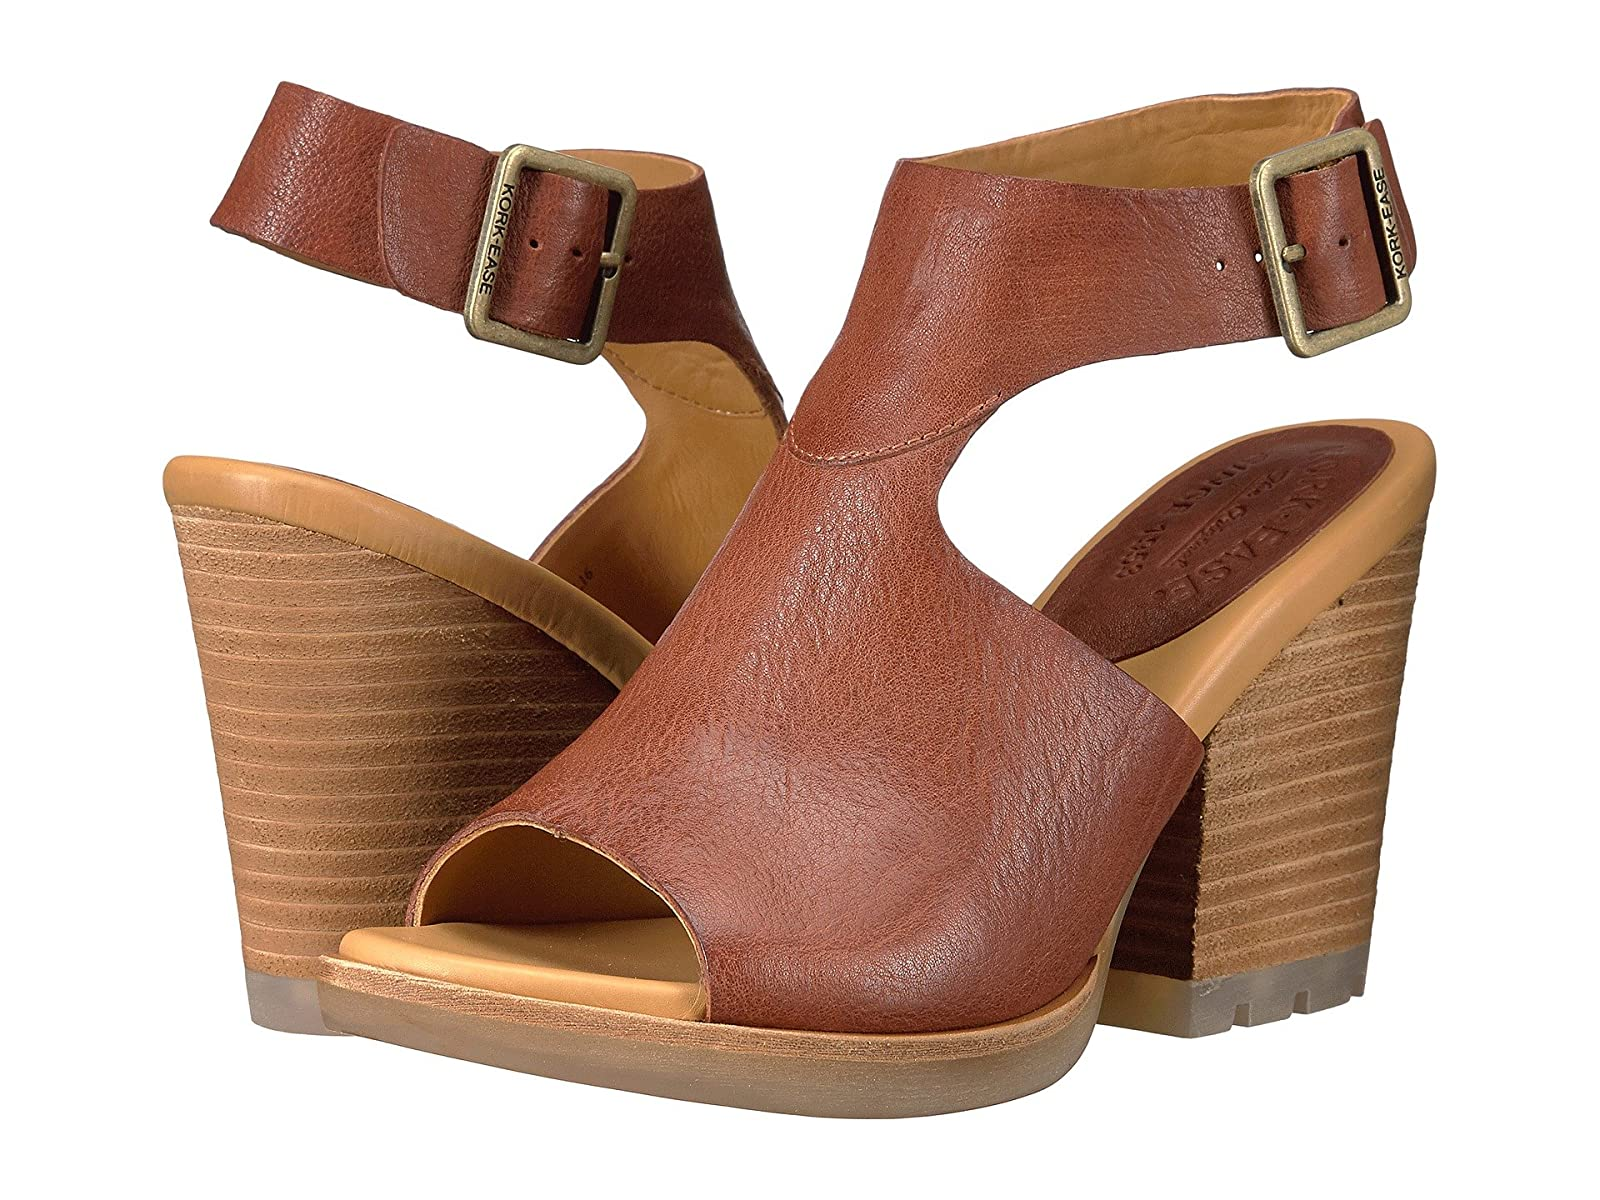 Kork-Ease LindenCheap and distinctive eye-catching shoes